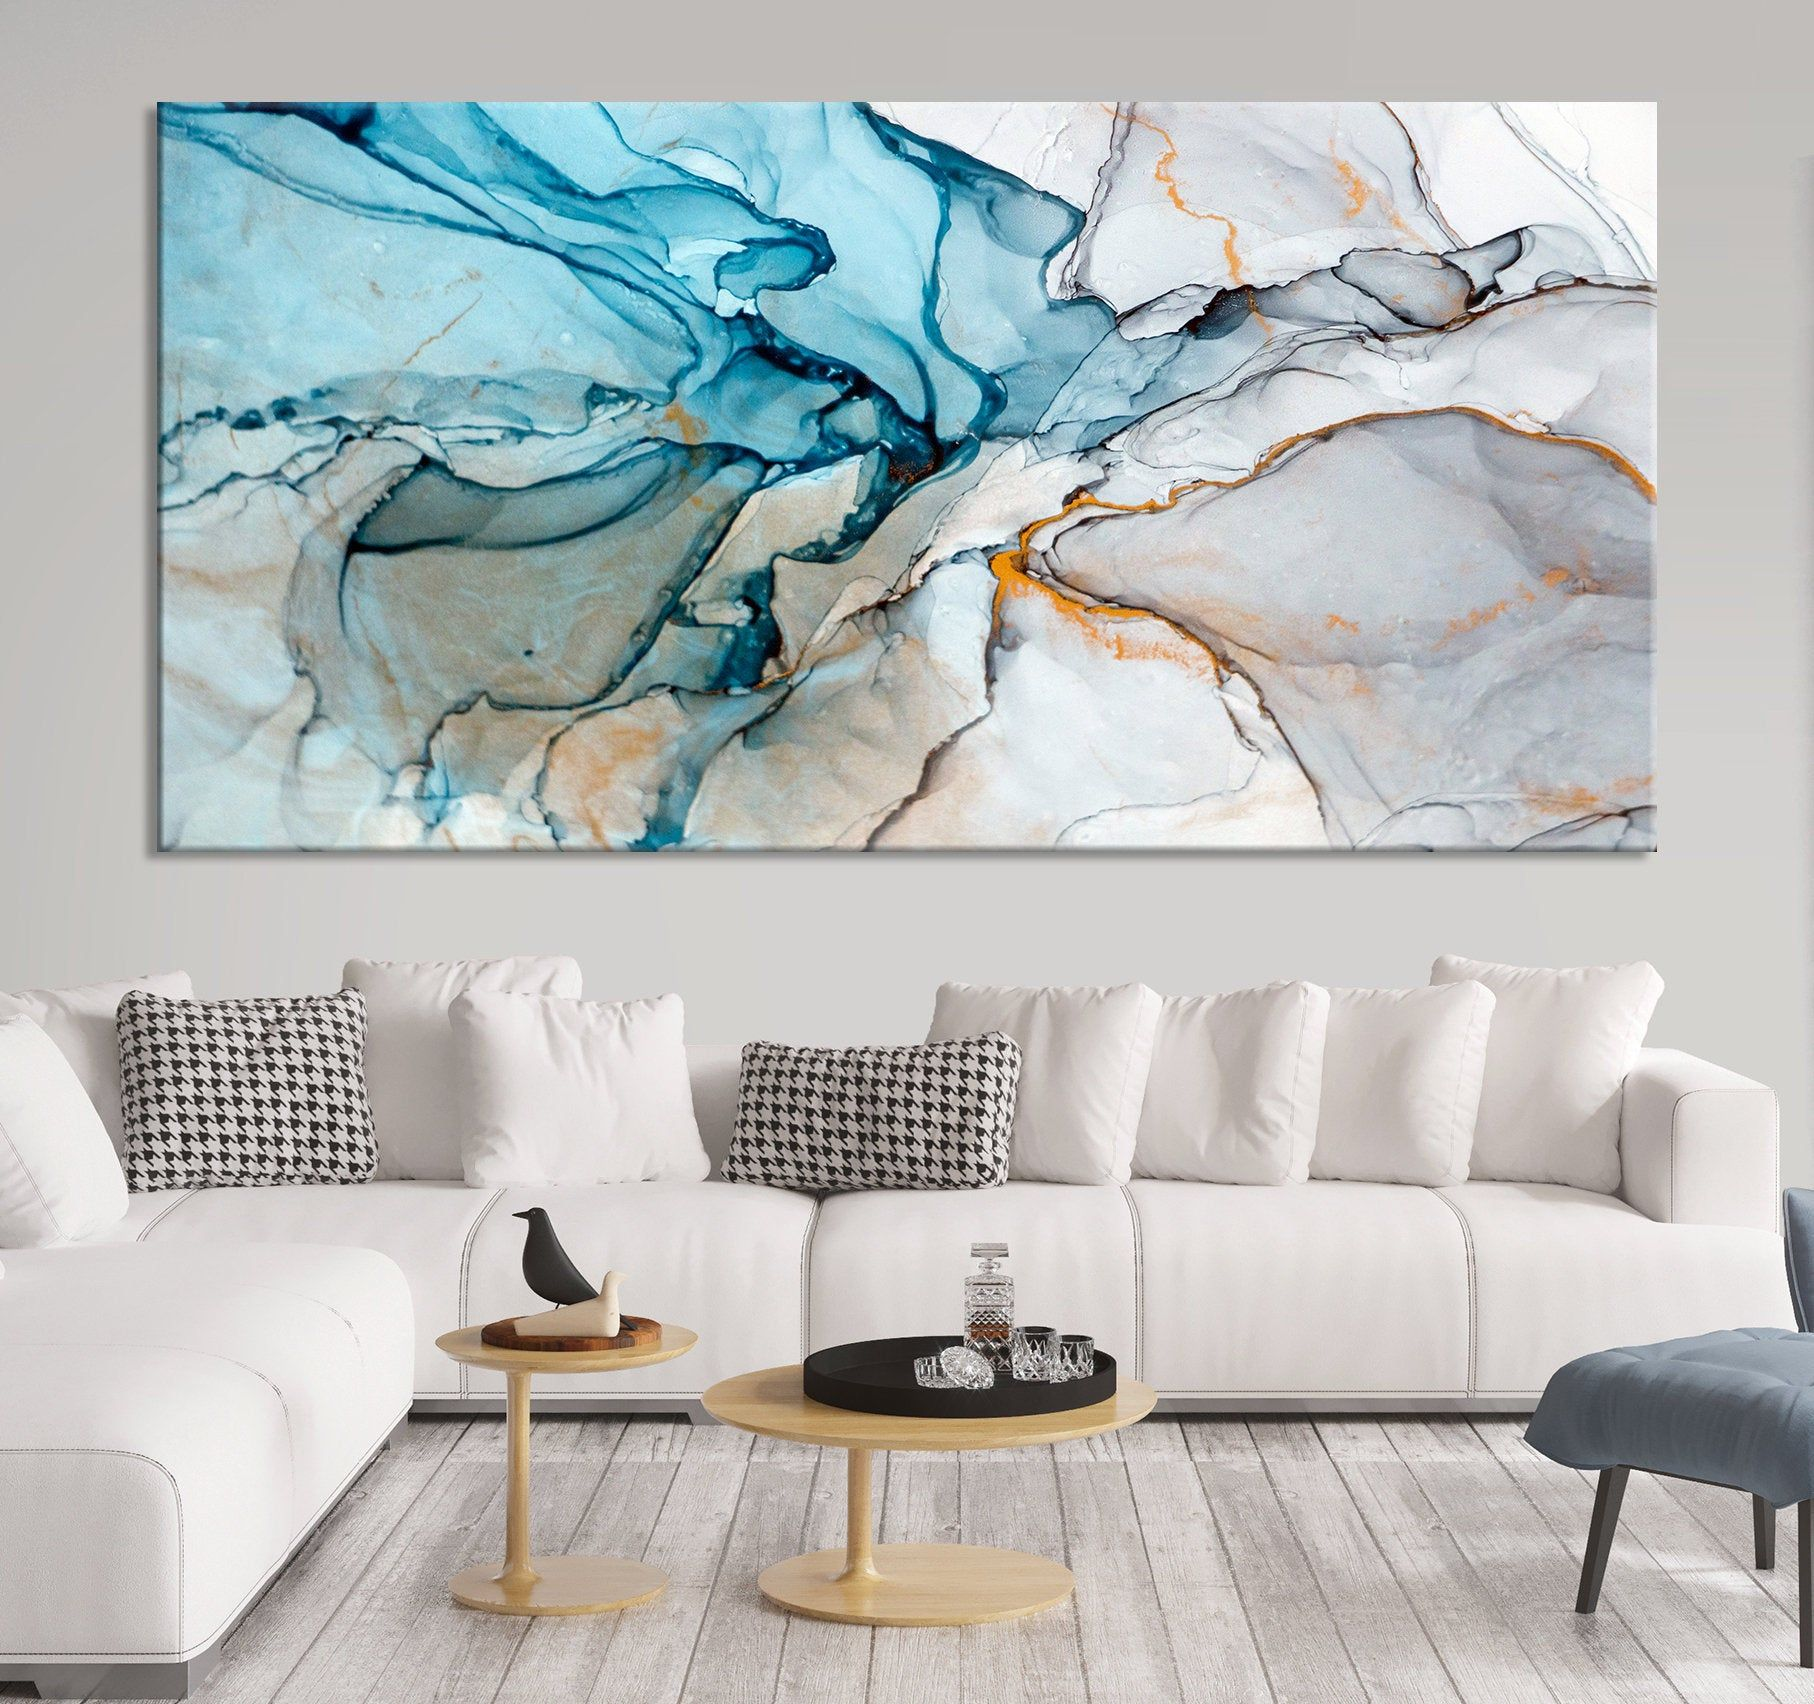 Wall Art Marble Canvas Print Large Marble Abstract Canvas Etsy In 2021 Wall Art Living Room Blue Abstract Wall Art Abstract Canvas Art